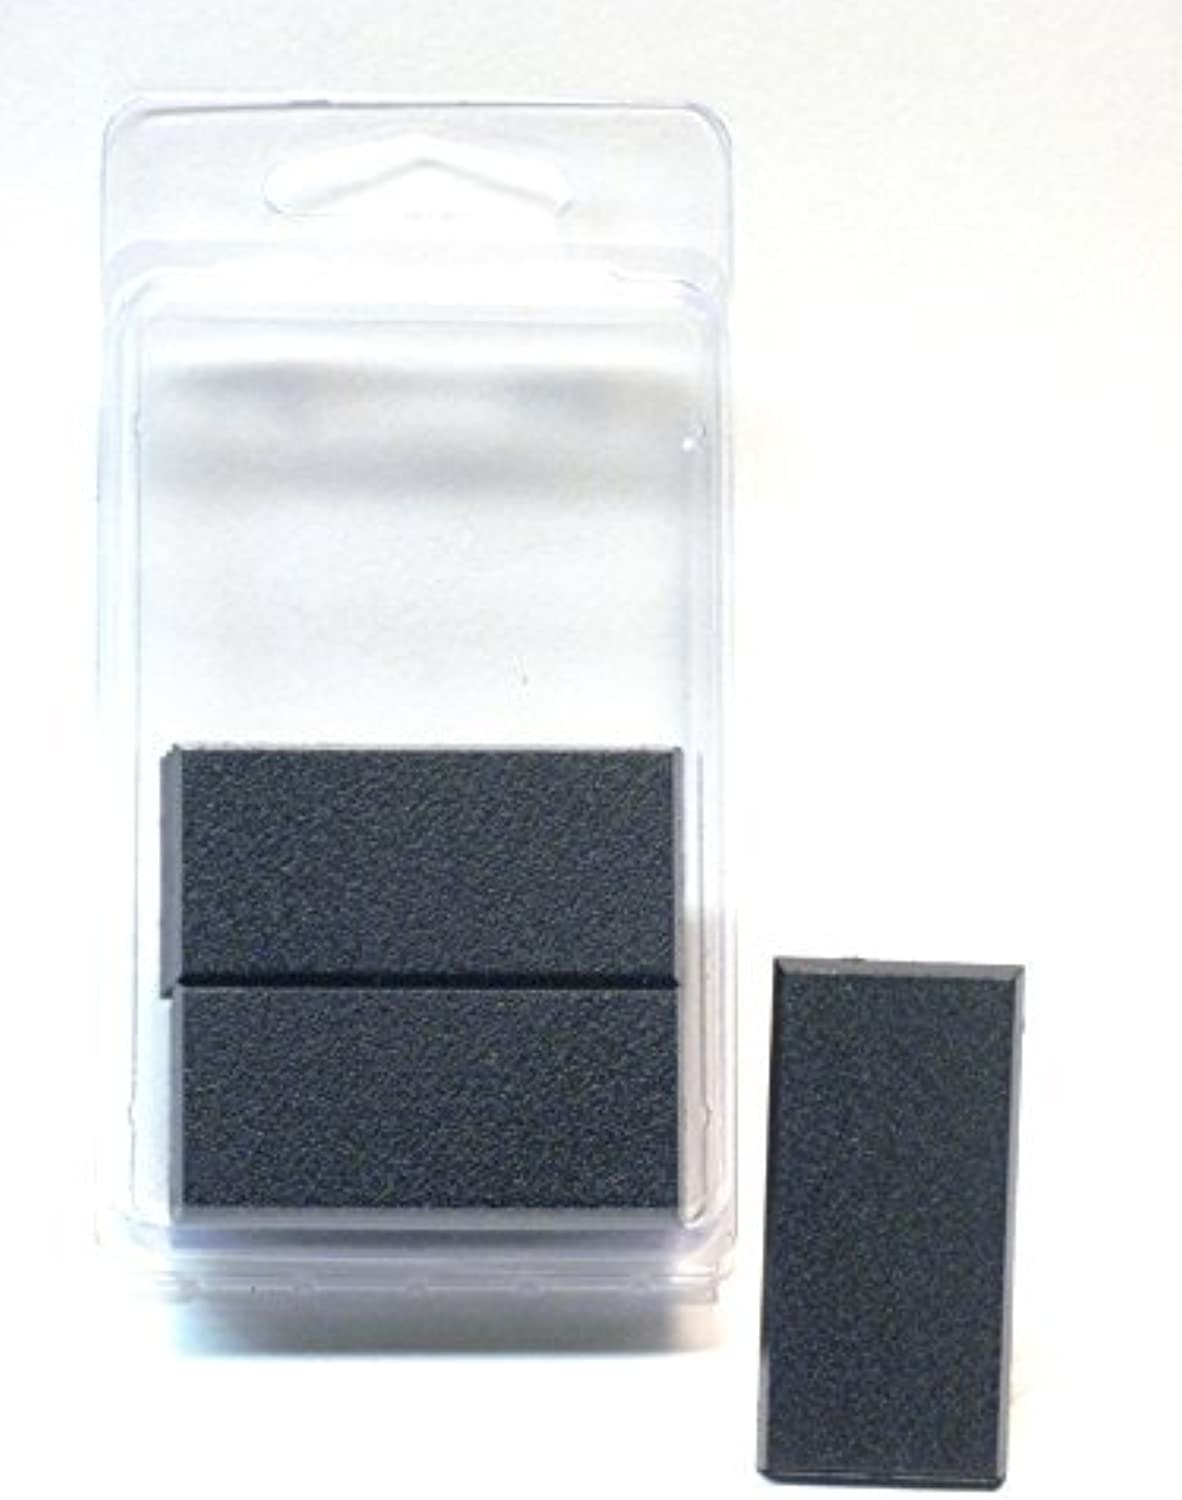 Value  50MM x 25MM Square Rectangle Black Miniature Model Cavalry Bases for TableTop or Miniature WarGames by Hedral